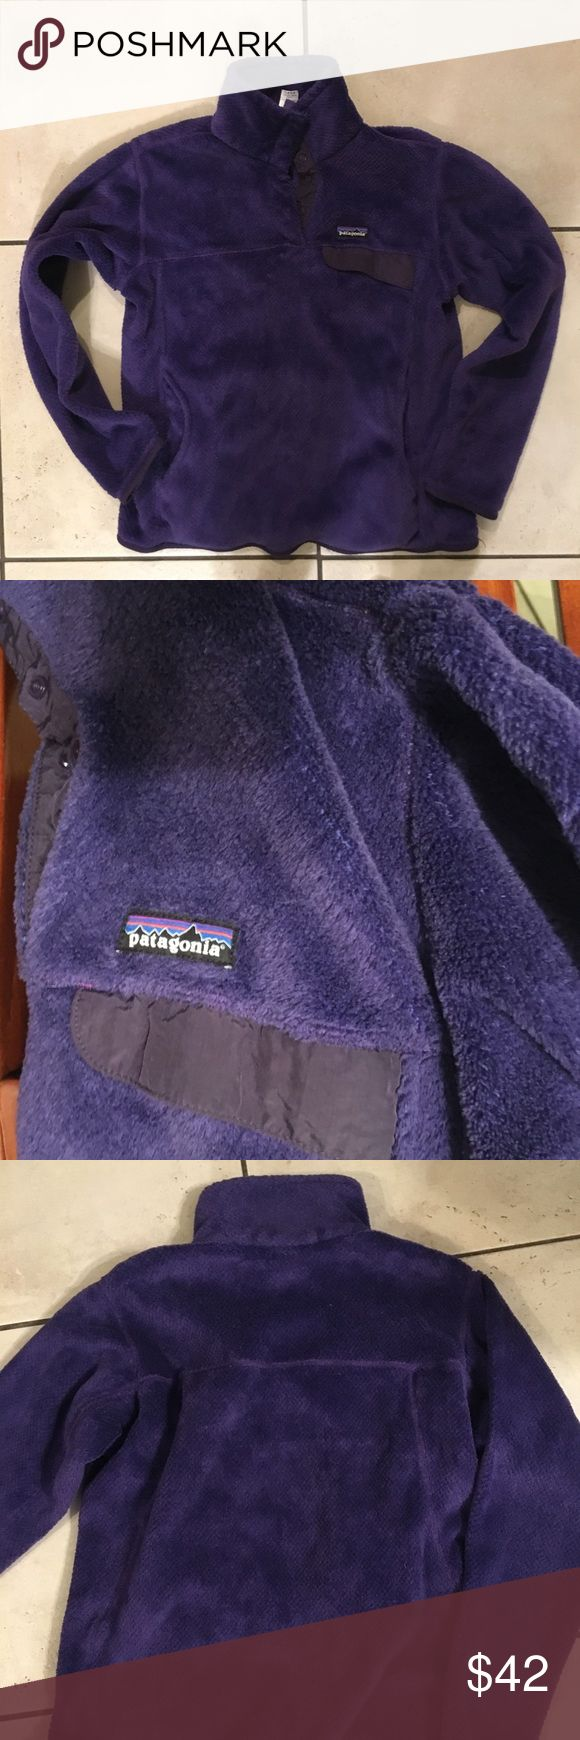 Patagonia pullover Euc pullover in purple Patagonia Jackets & Coats